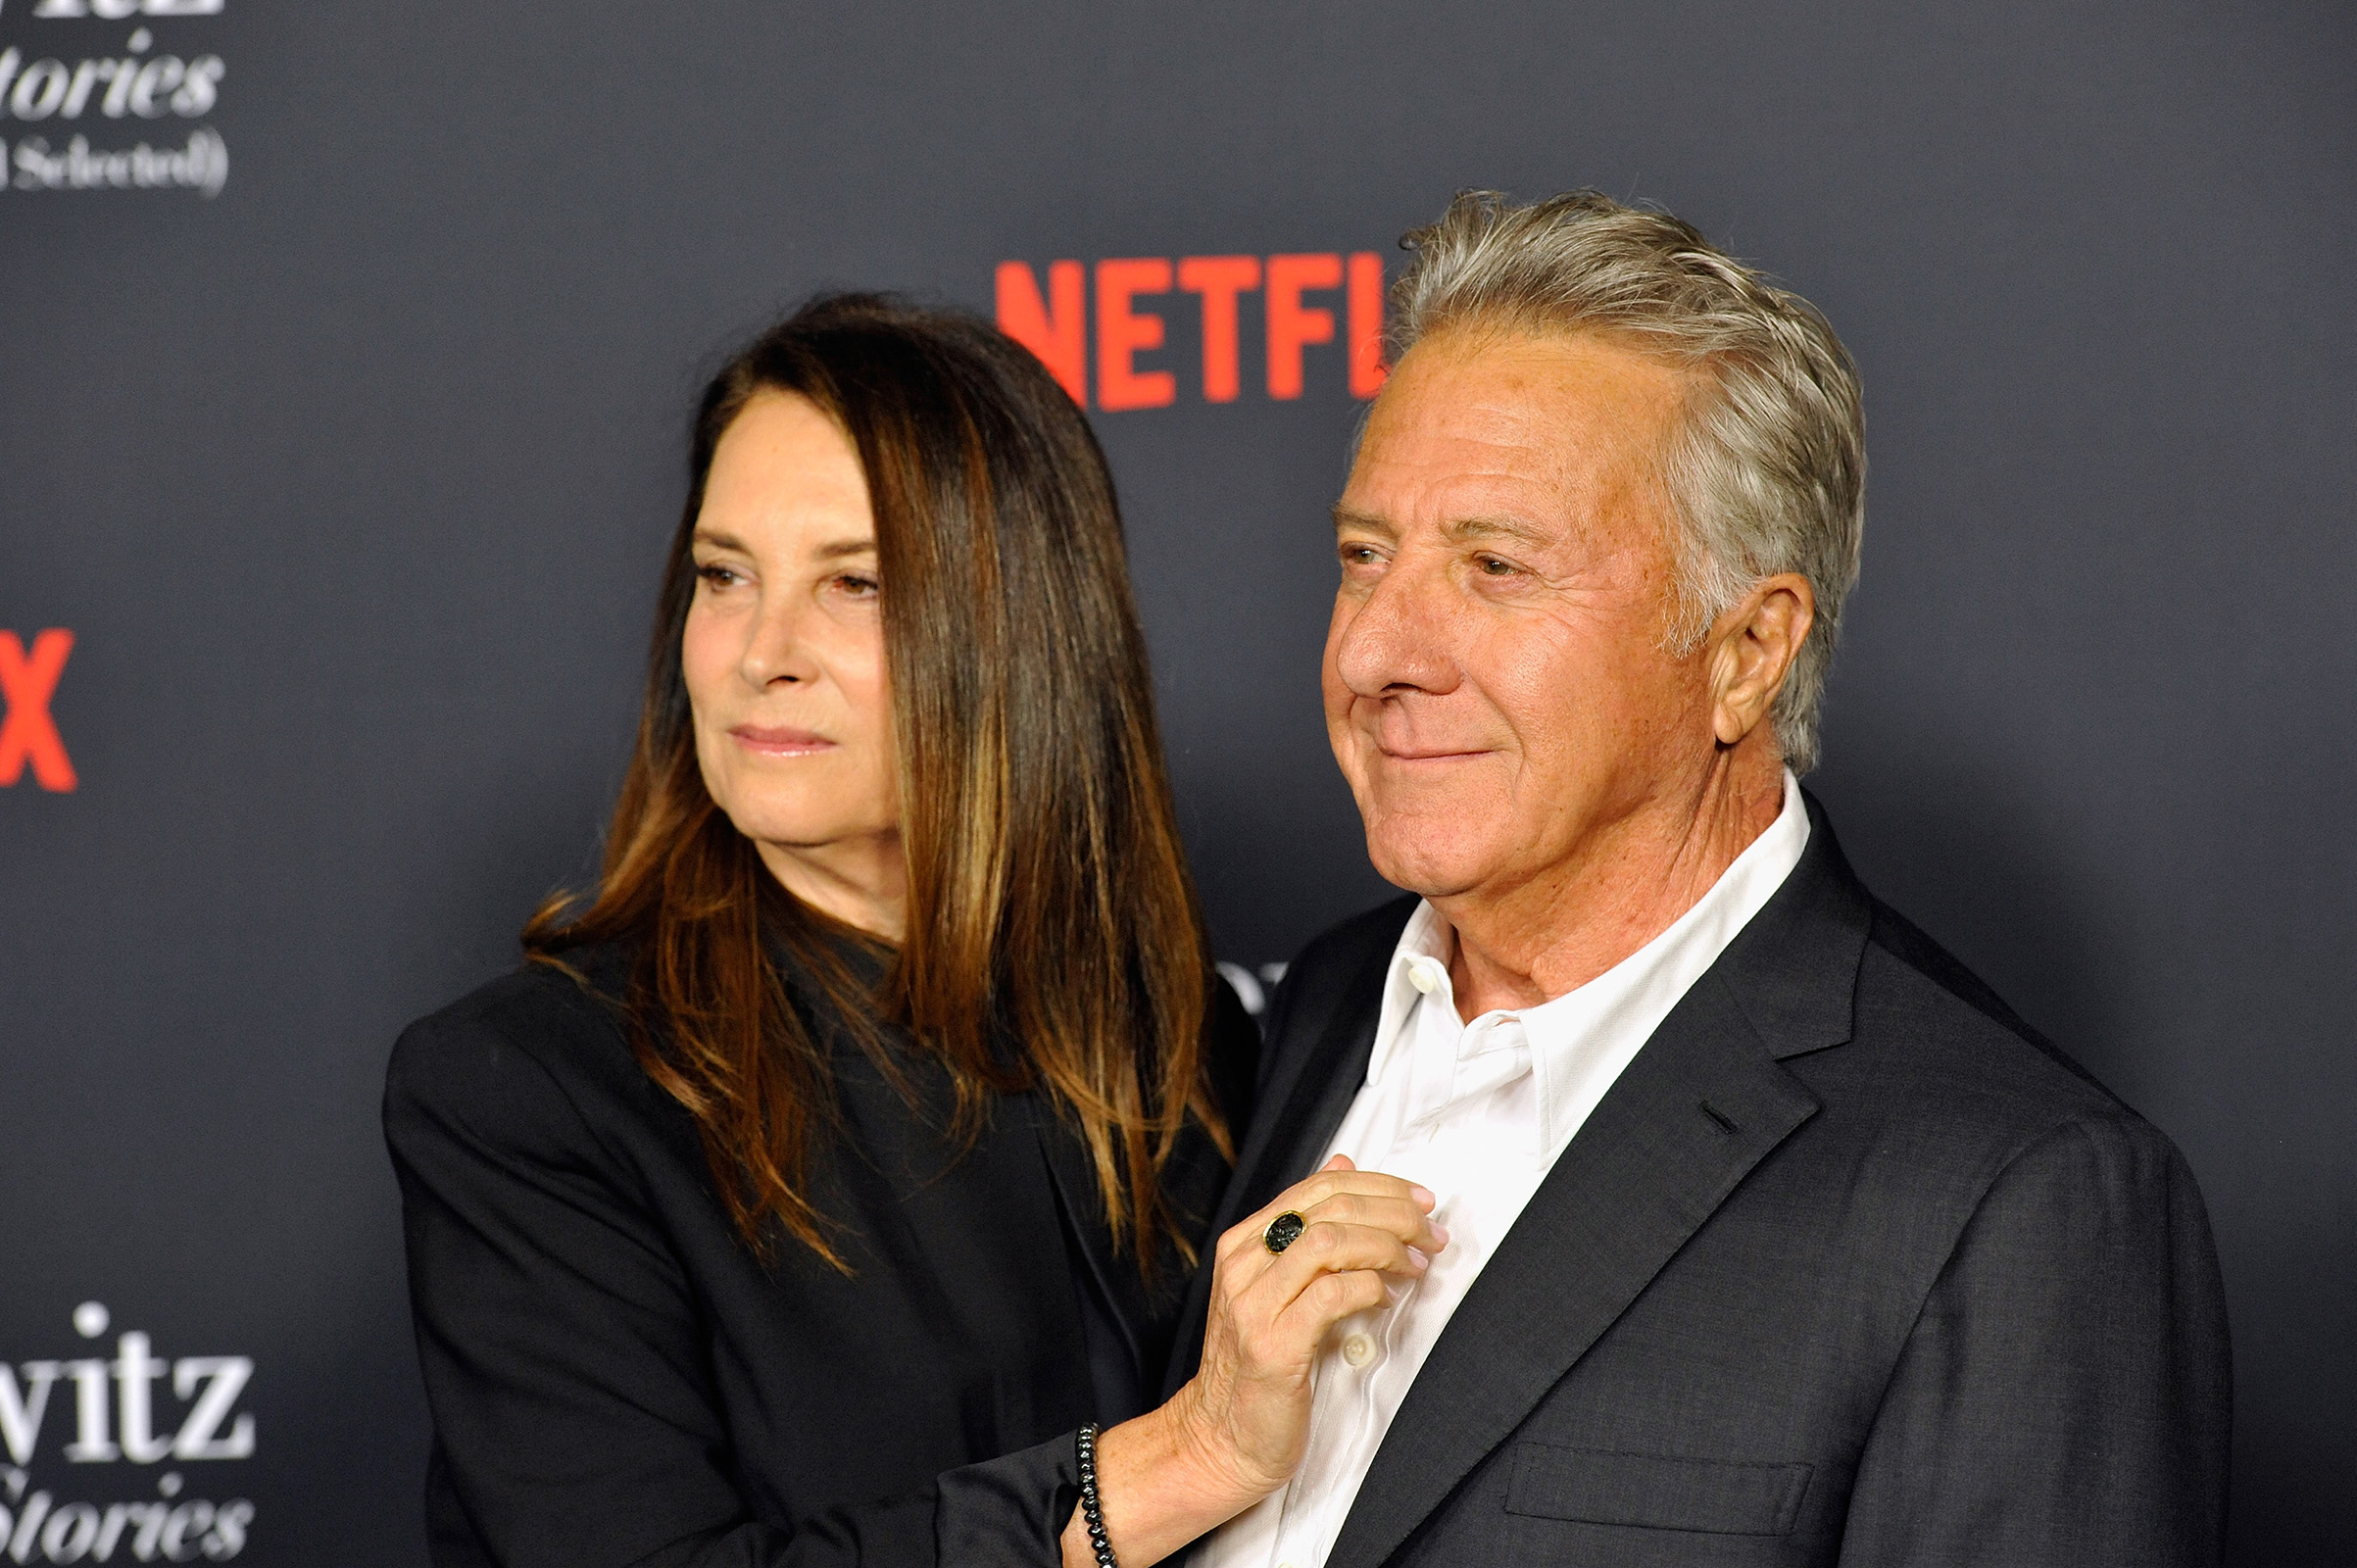 Lisa Hoffman and Dustin Hoffman attend a screening of Netflix's  The Meyerowitz Stories (New and Selected)  at Directors Guild Of America on Oct. 11, 2017 in Los Angeles.